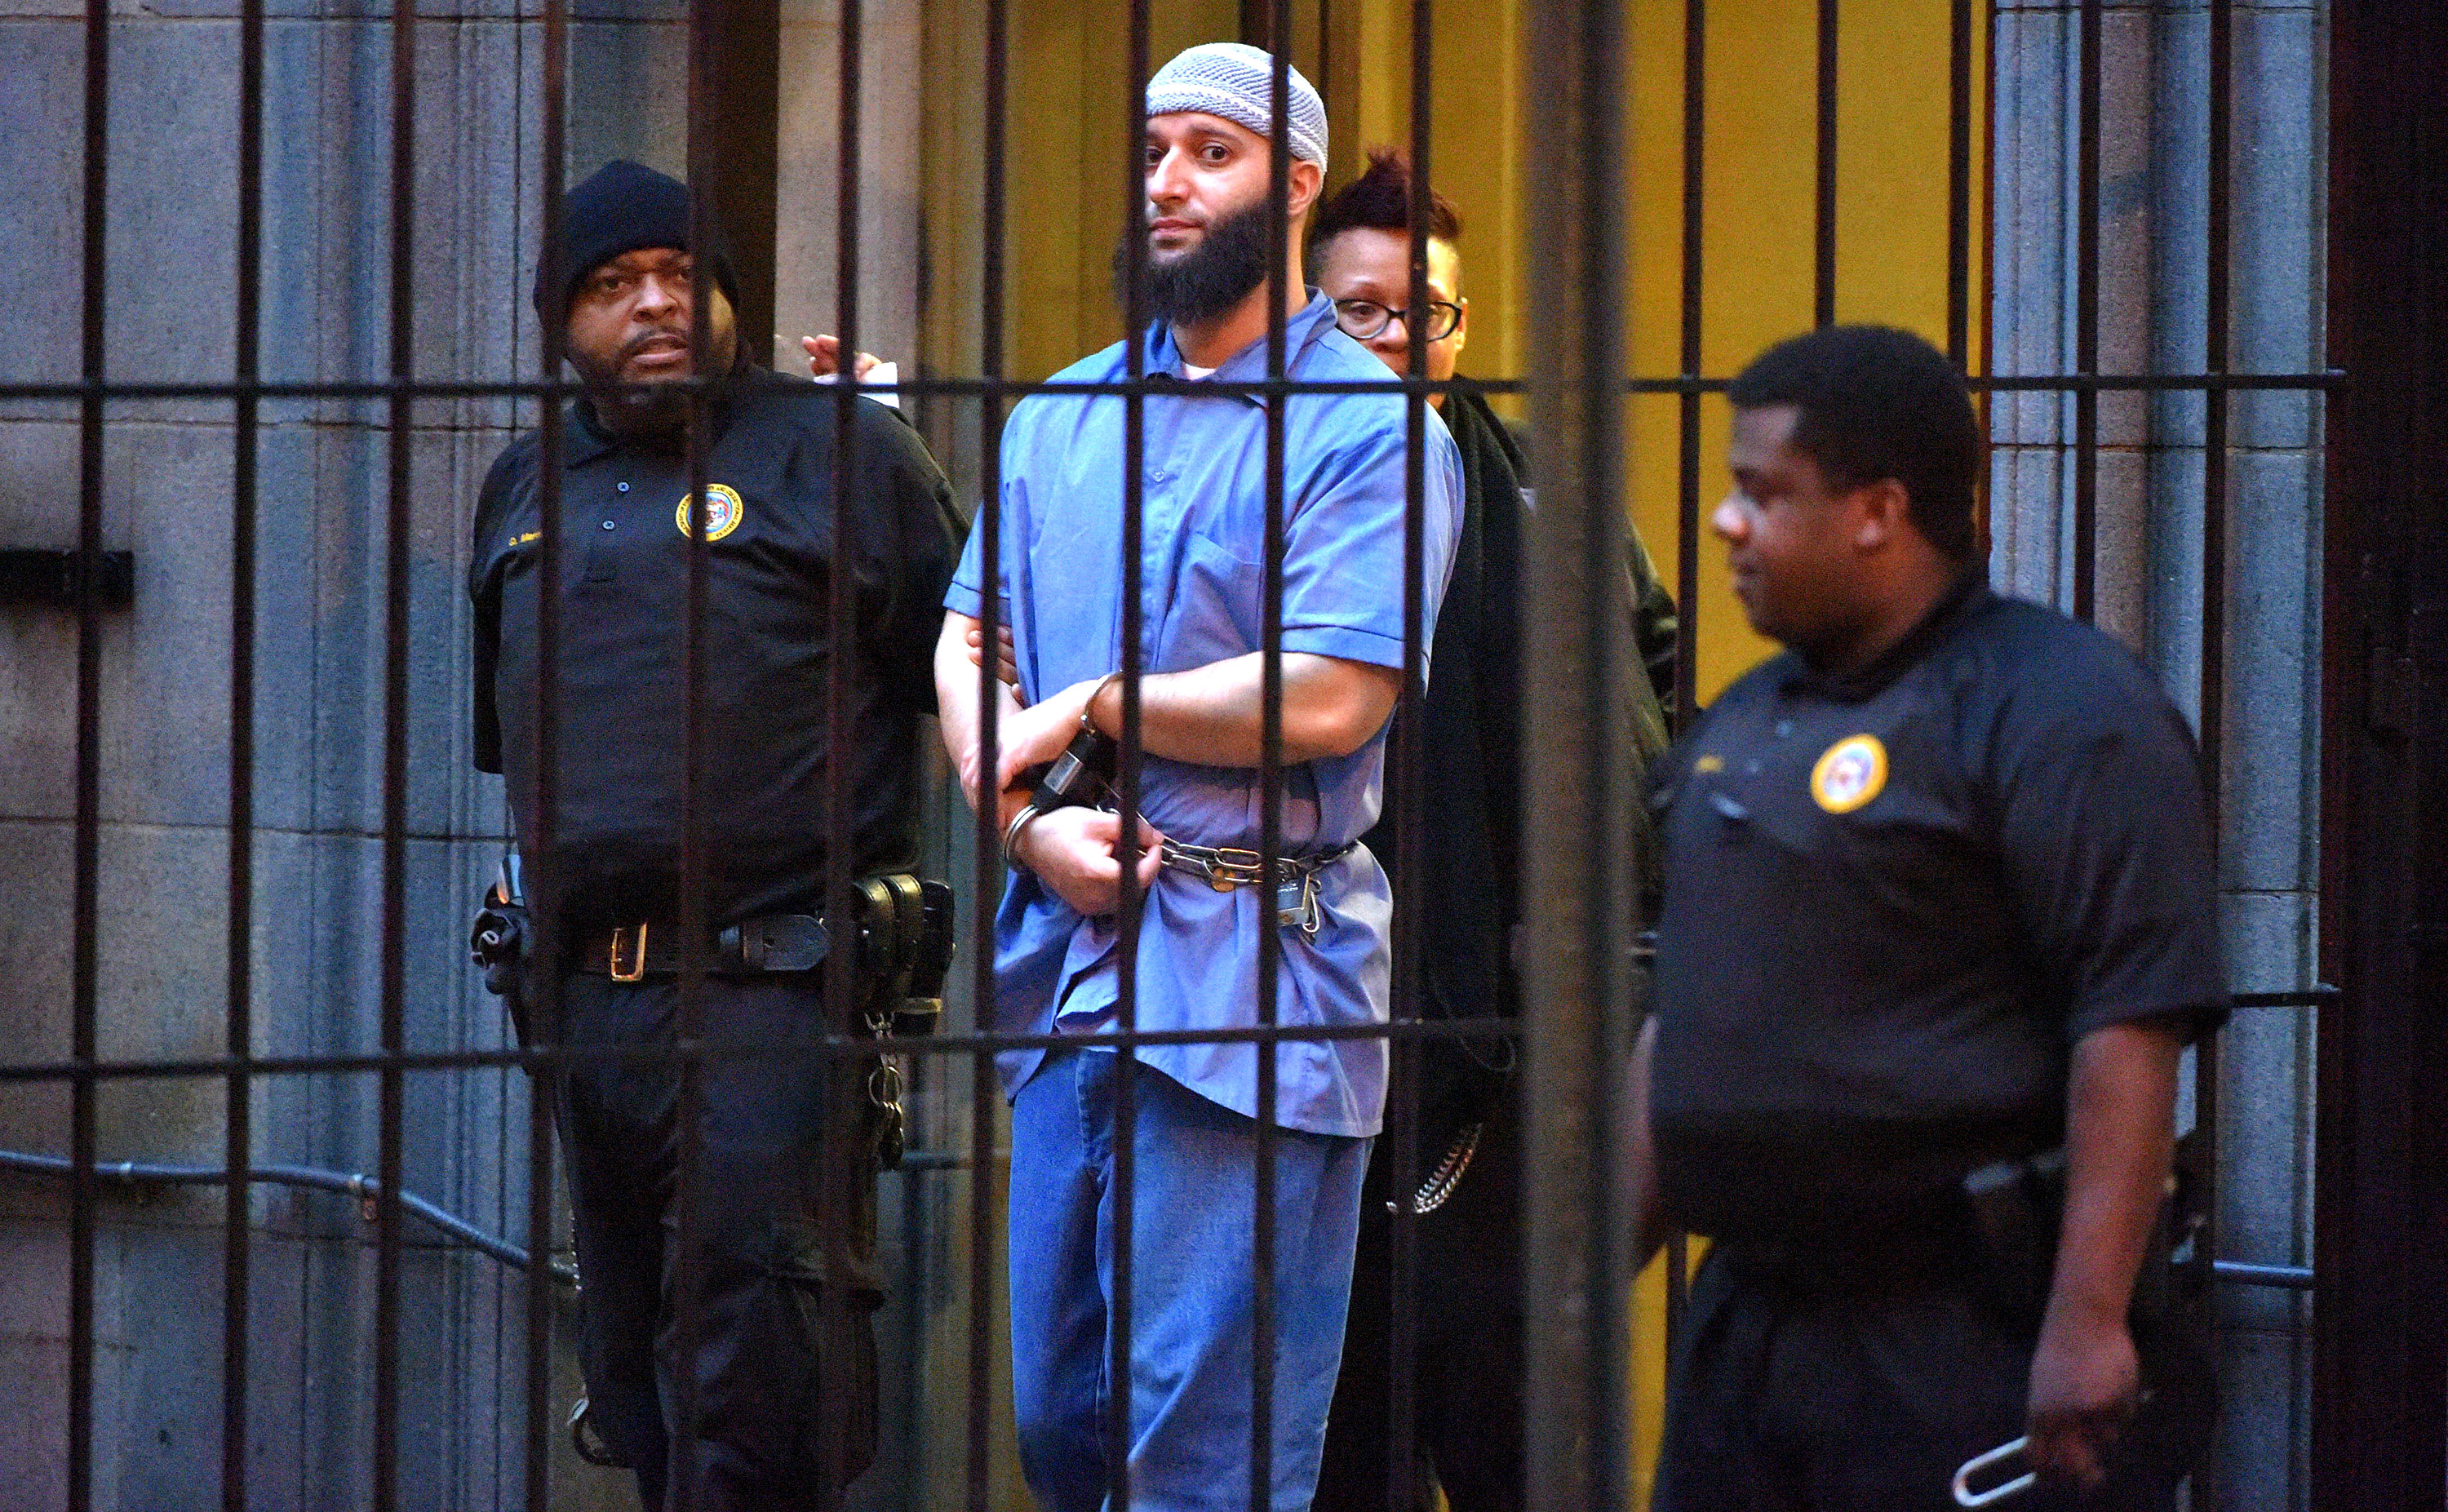 Who Is Adnan Syed? 5 Things to Know Ahead of HBO's Docuseries - Syed has been in prison since early 2000 and has never changed his tune of innocence.